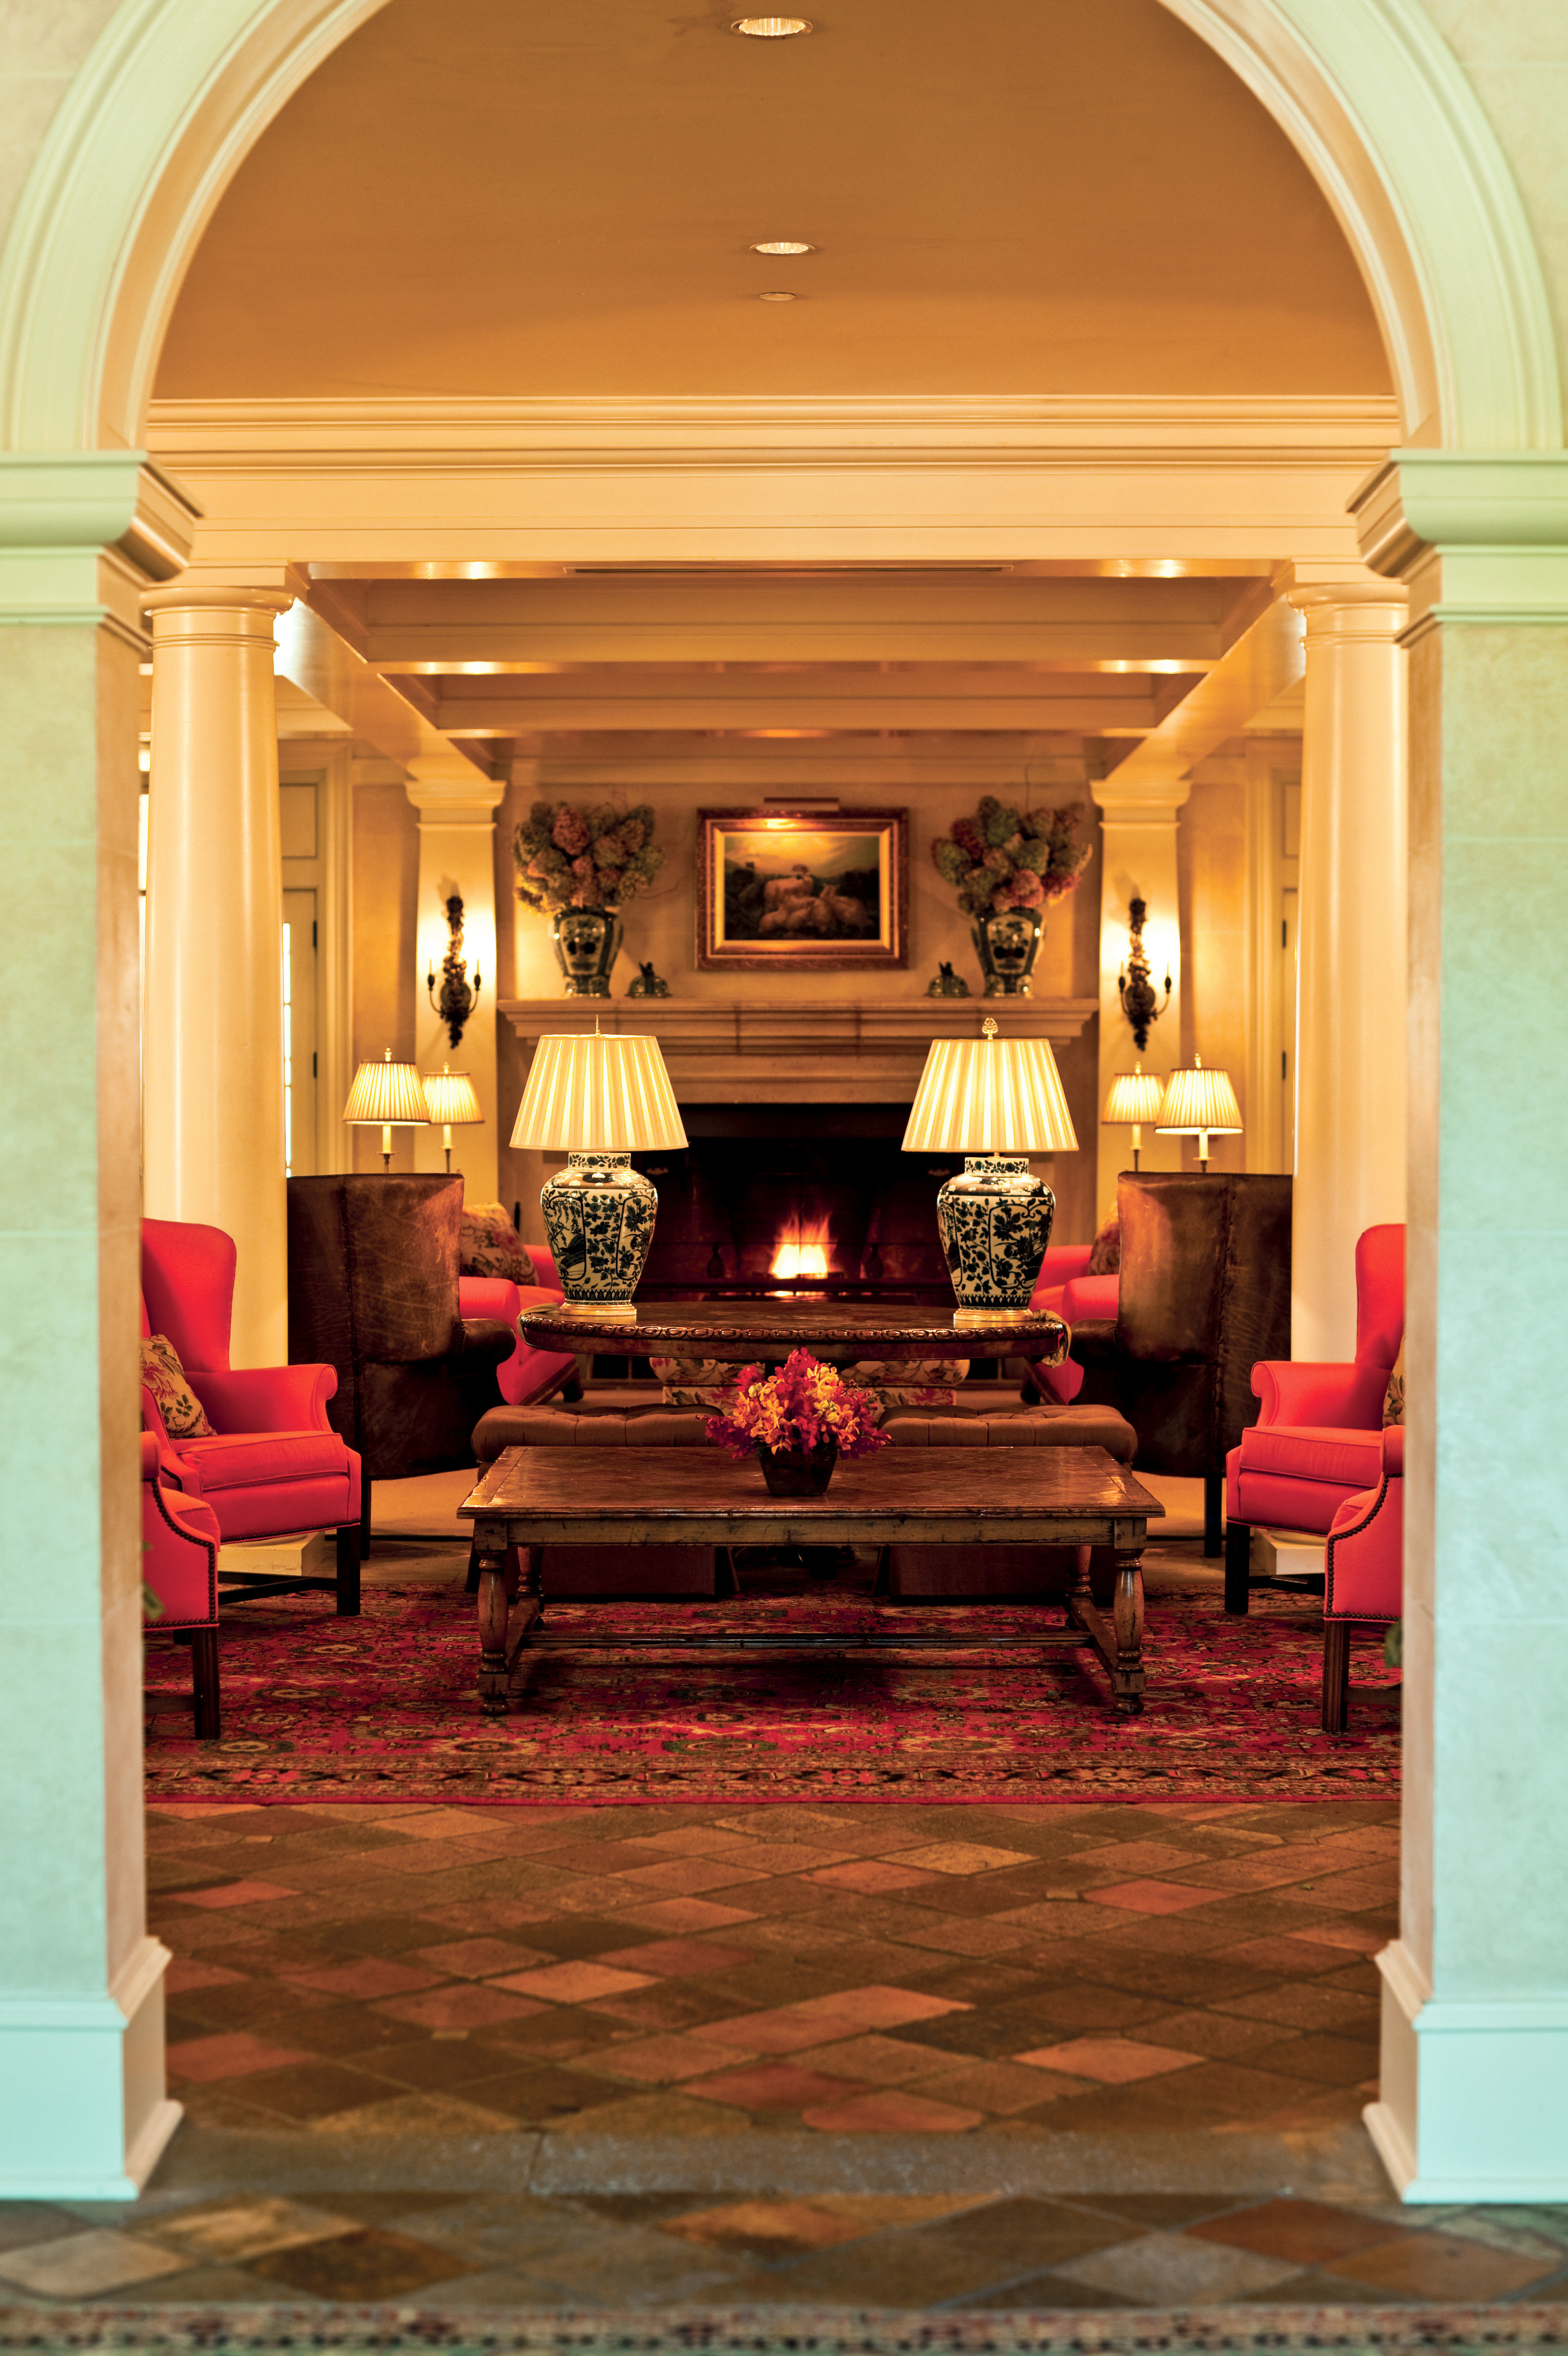 Country Fireplace Lobby Lounge Romantic Architecture home mansion living room palace hall arch Bedroom